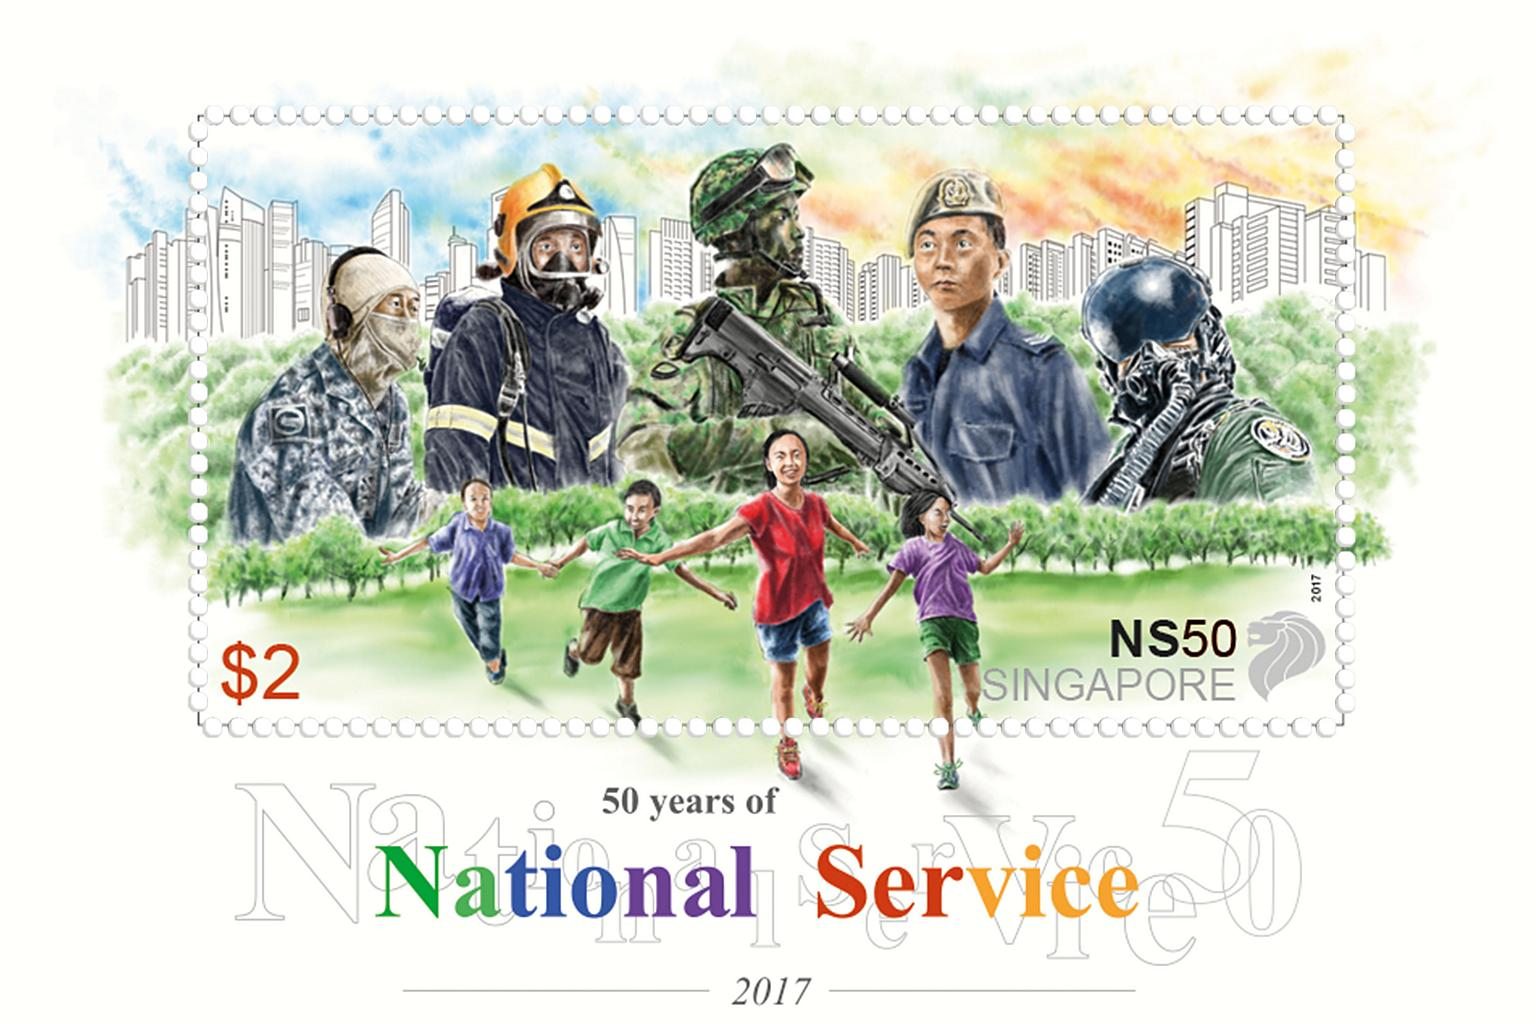 Over the years, many generations of Singaporean sons have served with pride and honour in defence of their country. In time to come, their sons, and the sons of their sons, will continue in this fine tradition.